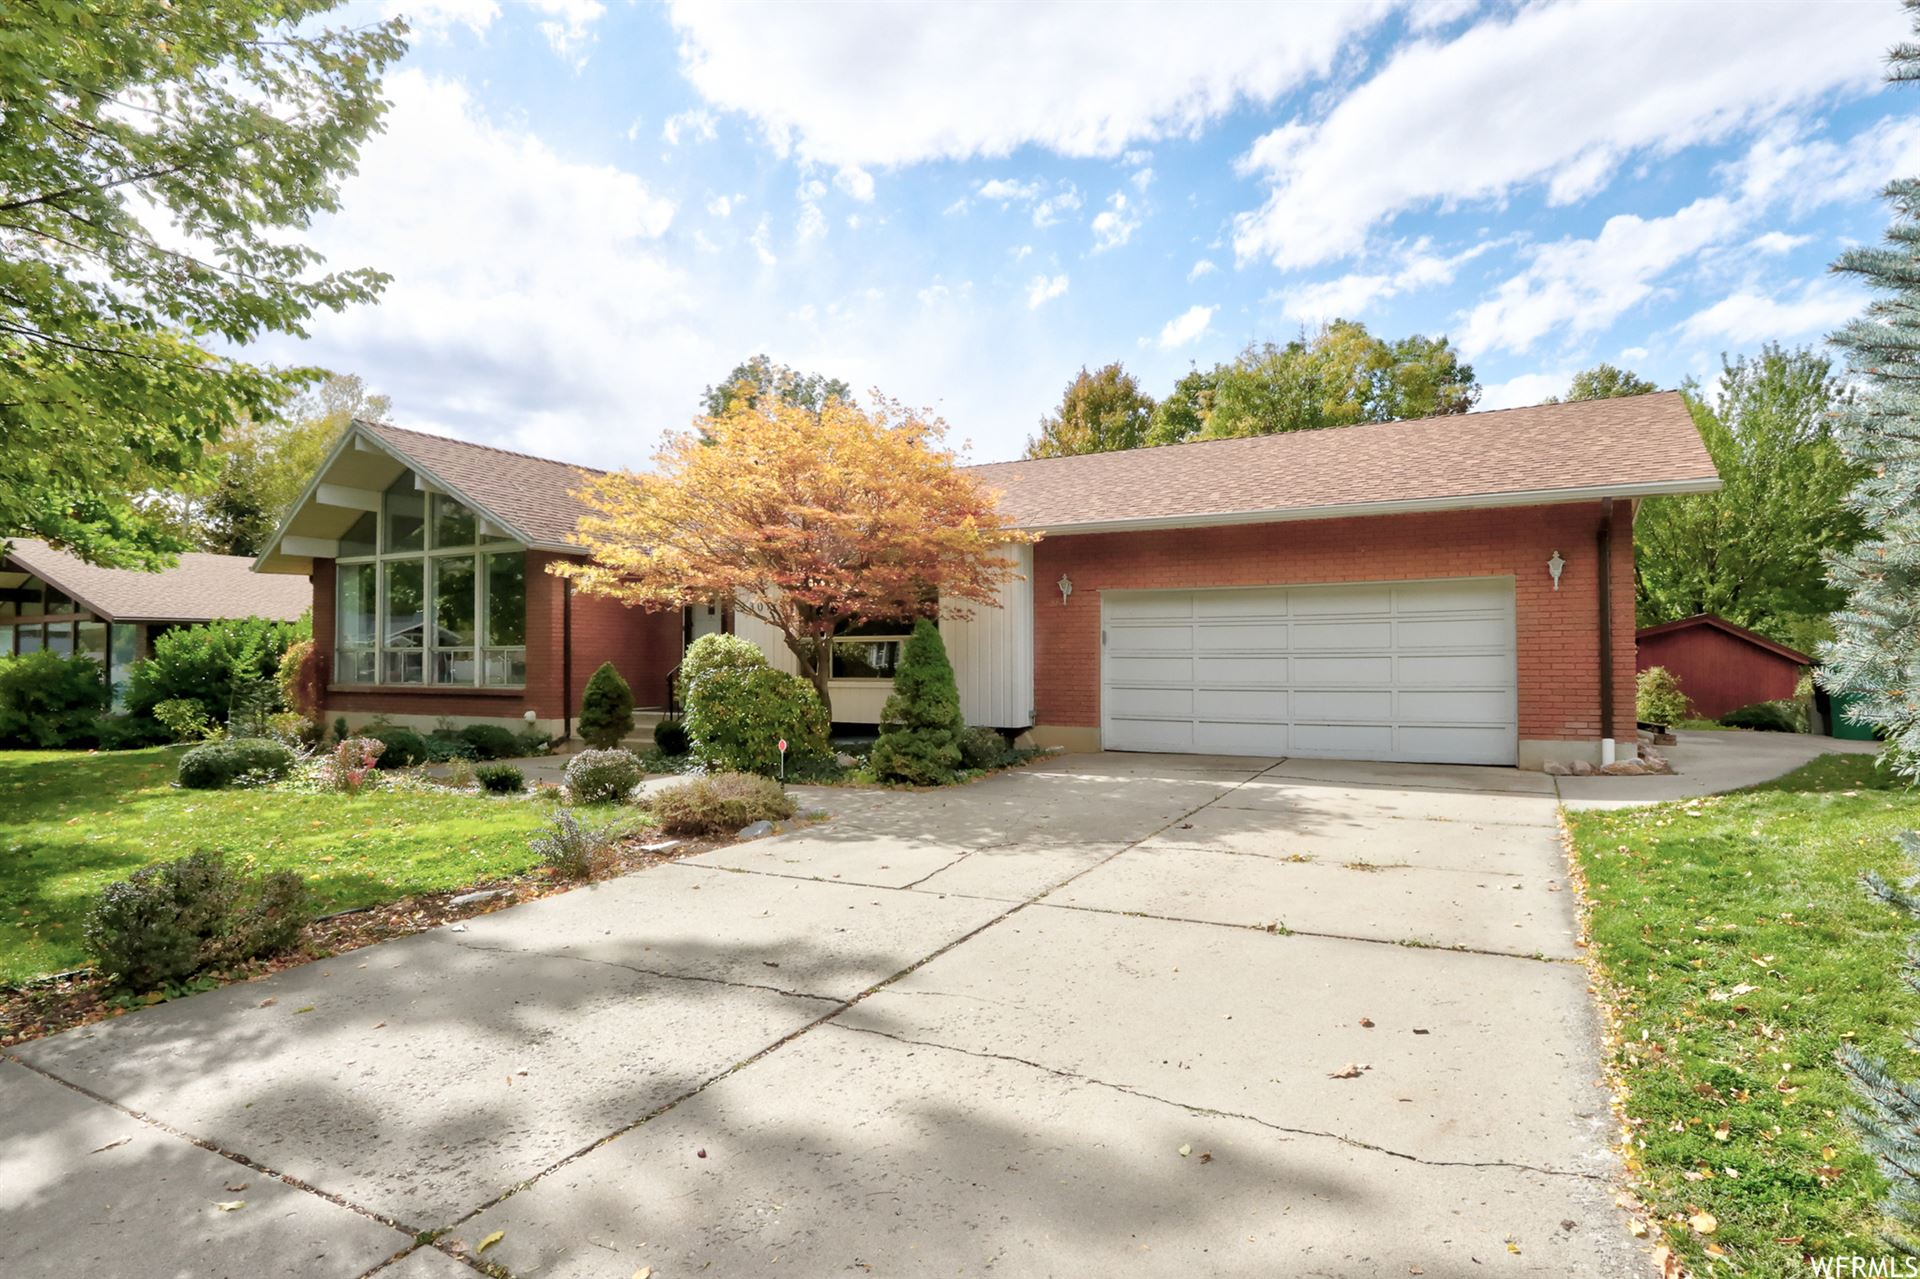 Photo of 3301 N MOHICAN LN, Provo, UT 84604 (MLS # 1775740)